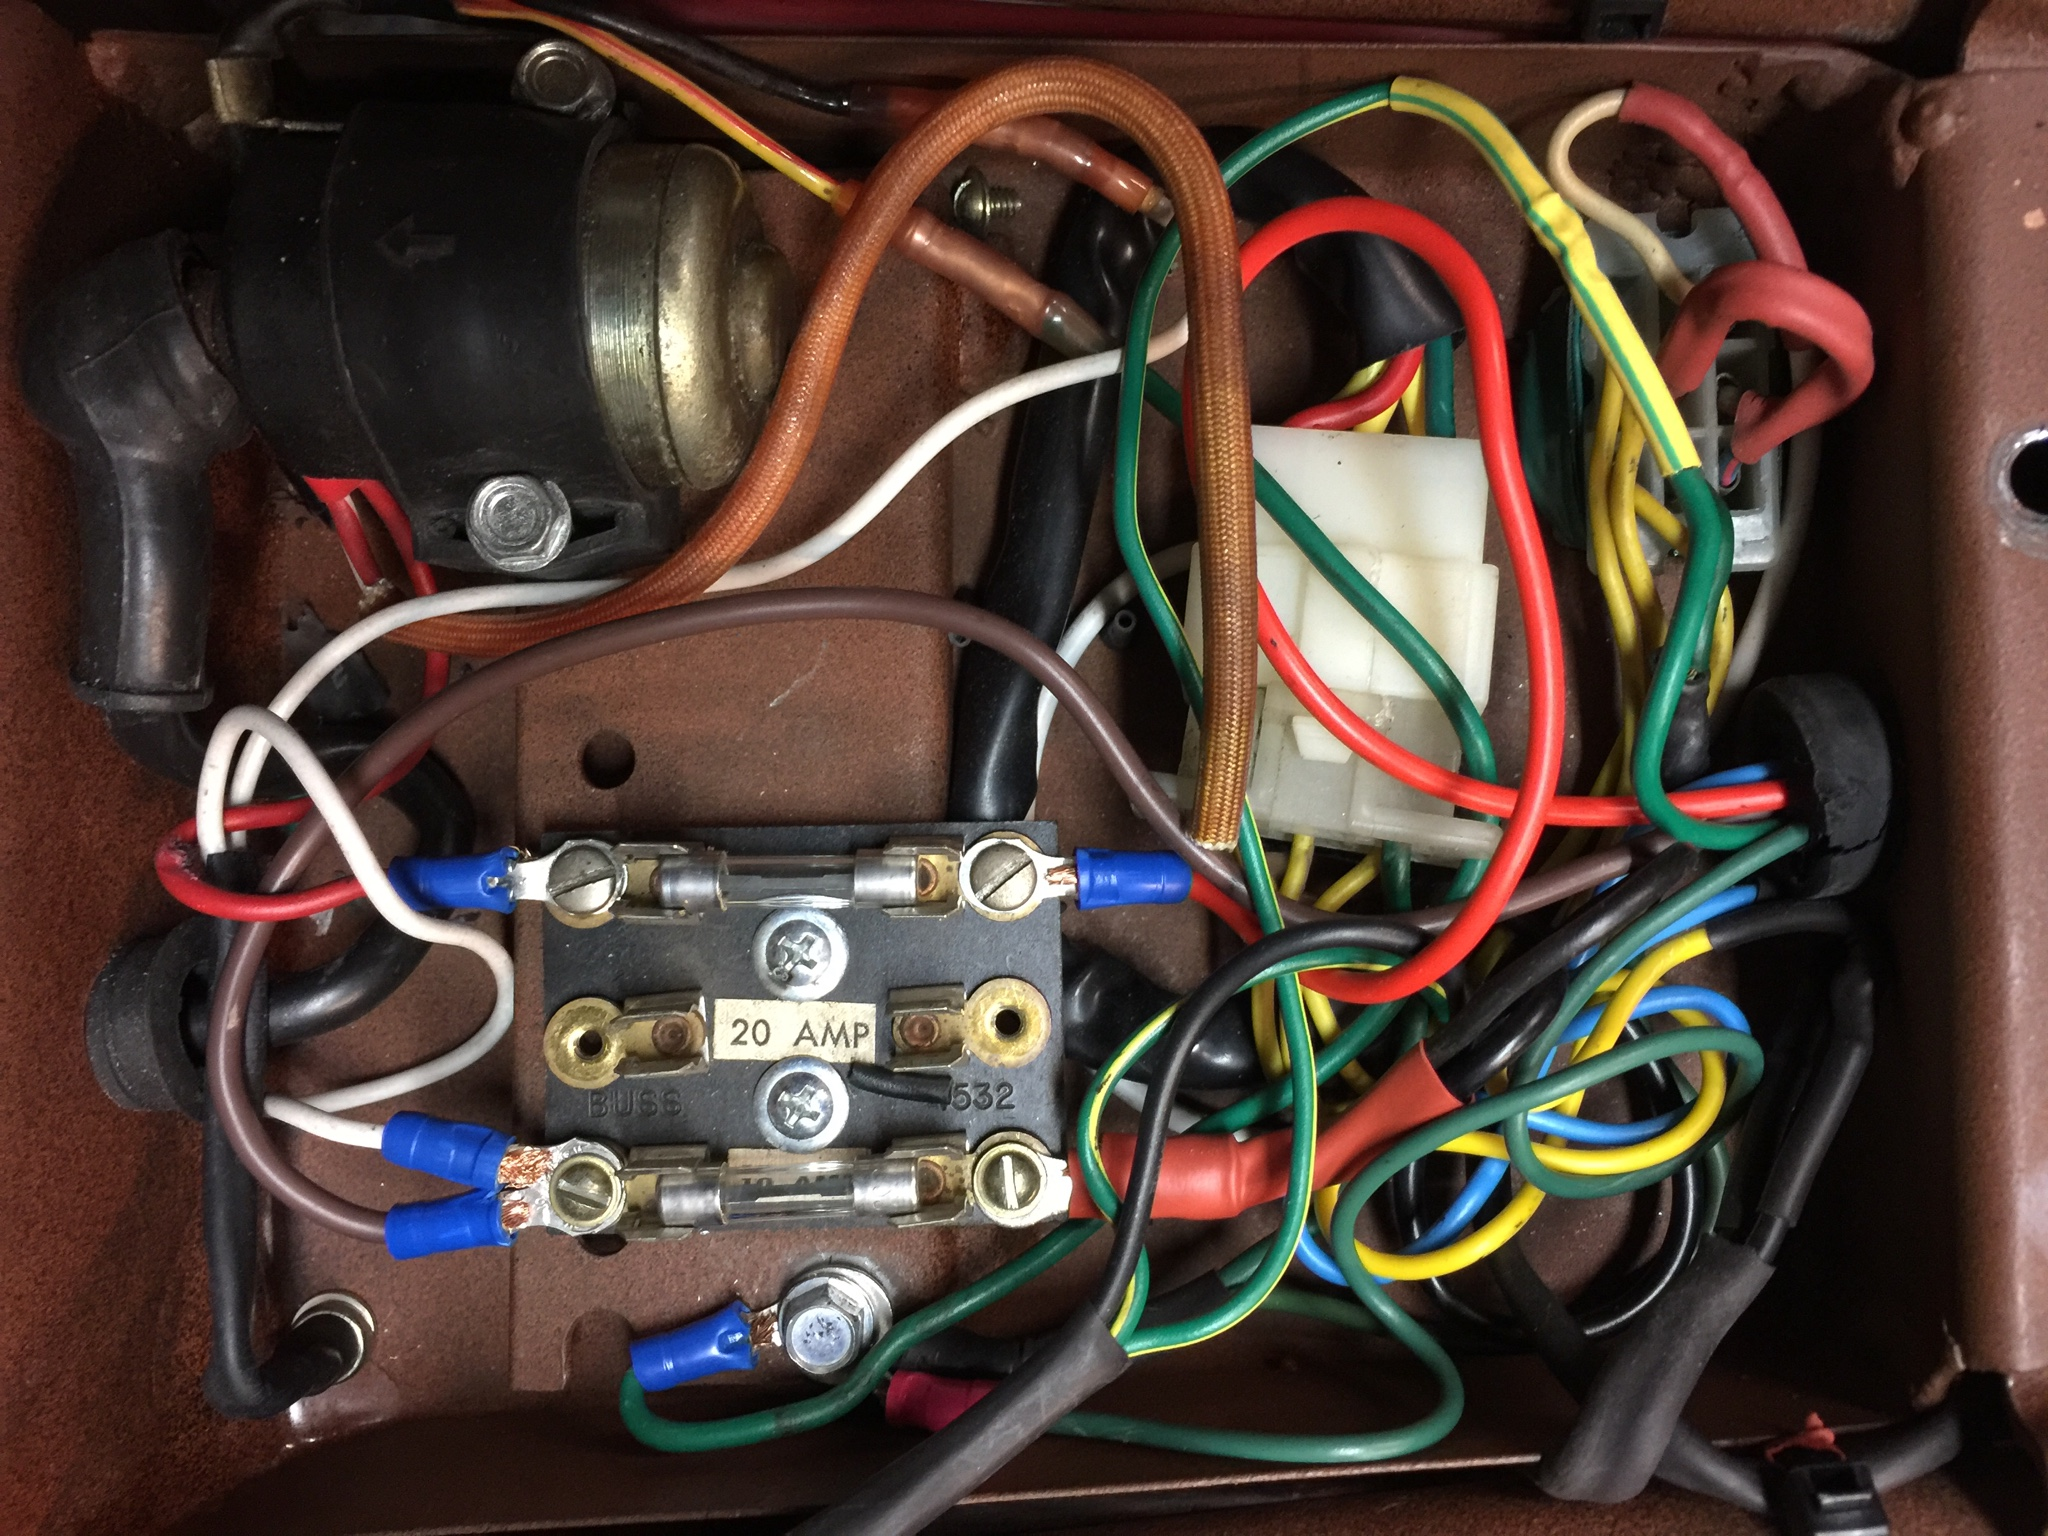 M1101 Wiring Harness - Free Wiring Diagram For You • on enclosed trailer wiring diagram, 6 pin trailer wiring diagram, nissan trailer wiring diagram, 4 plug trailer wiring diagram, army trailer wiring diagram, commercial trailer wiring diagram, ford trailer wiring diagram,